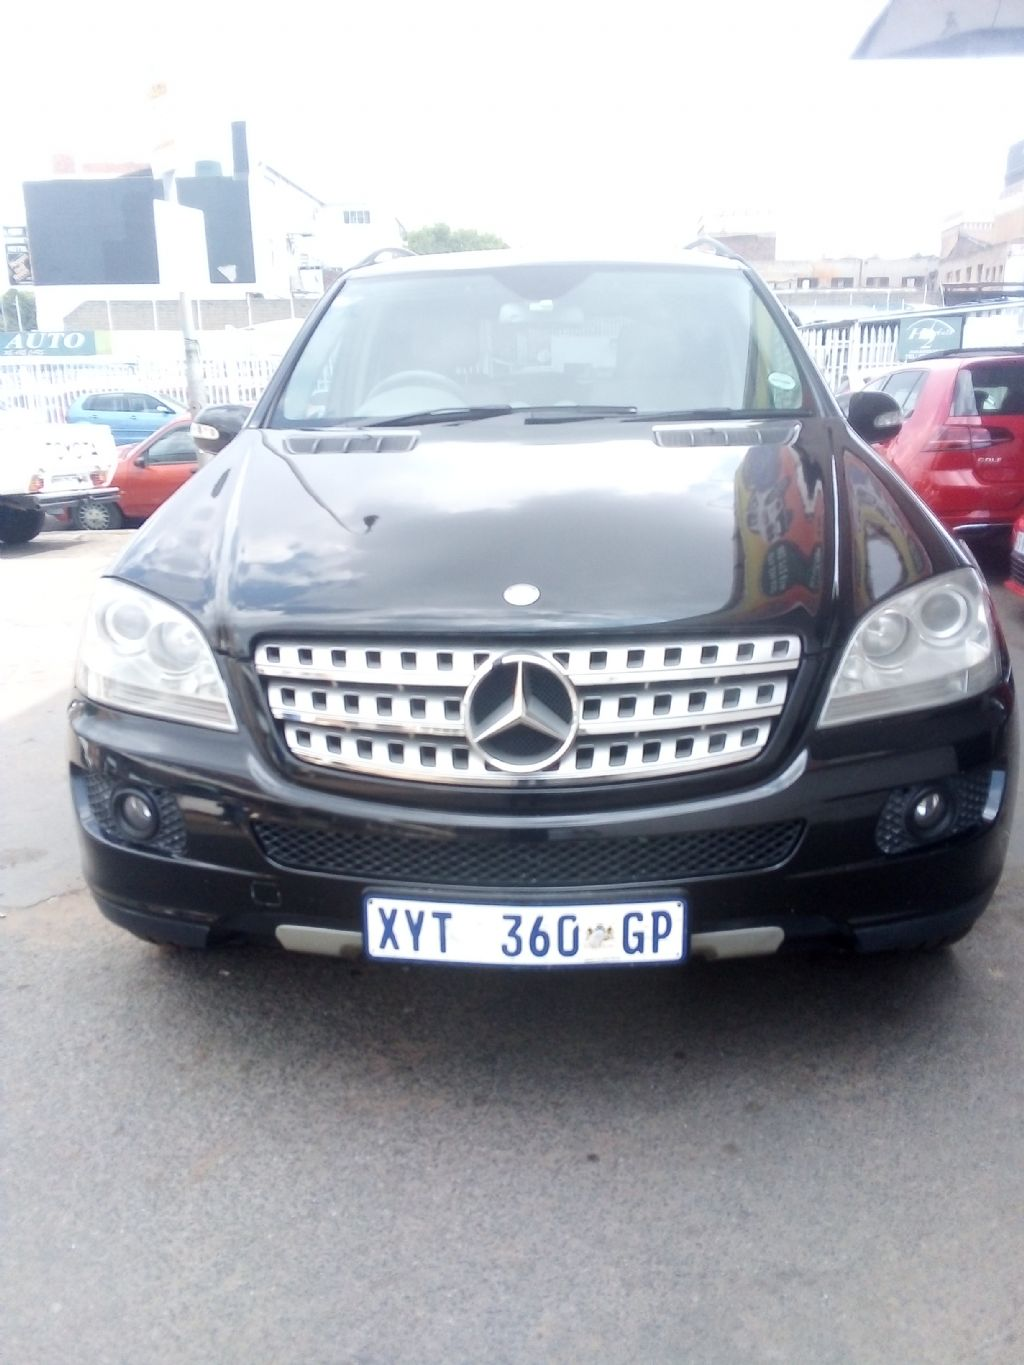 used-mercedes-benz-ml-class-3132273-1.jpg